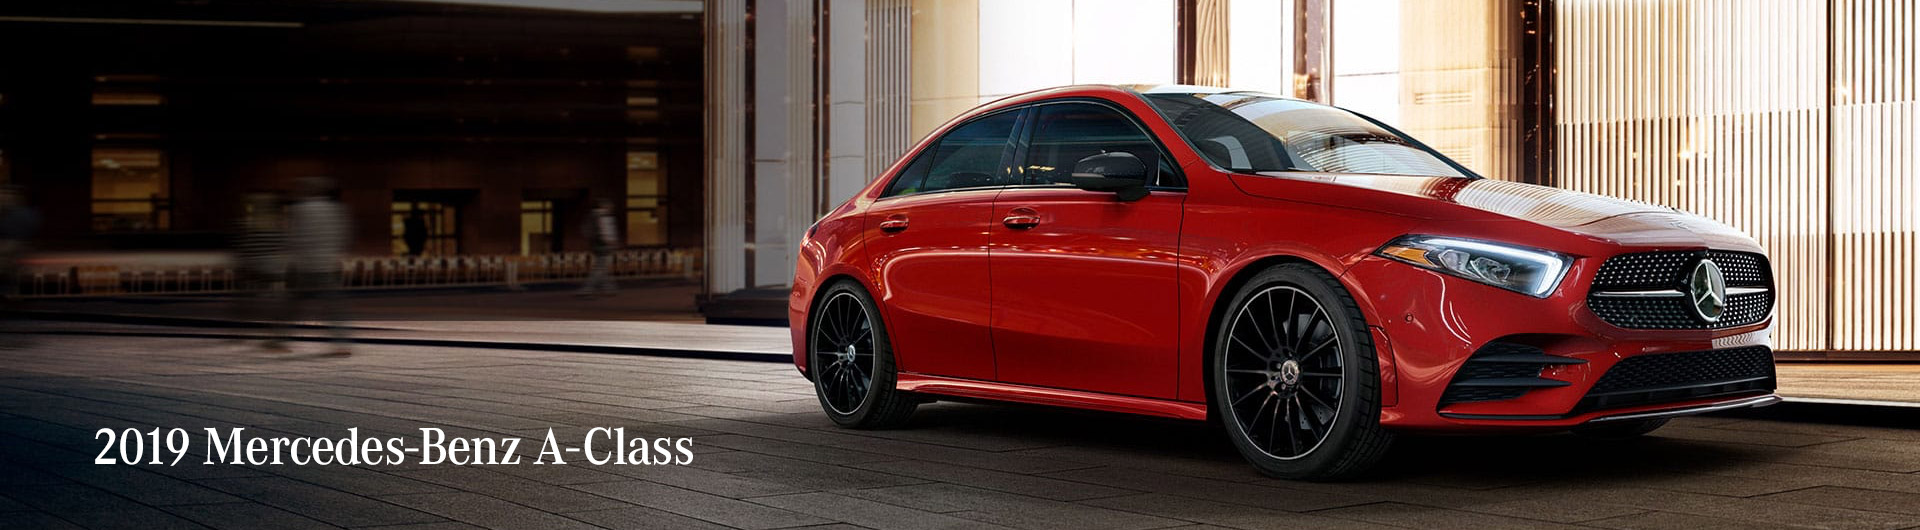 2019 Mercedes-Benz A-Class   Jackie Cooper Imports